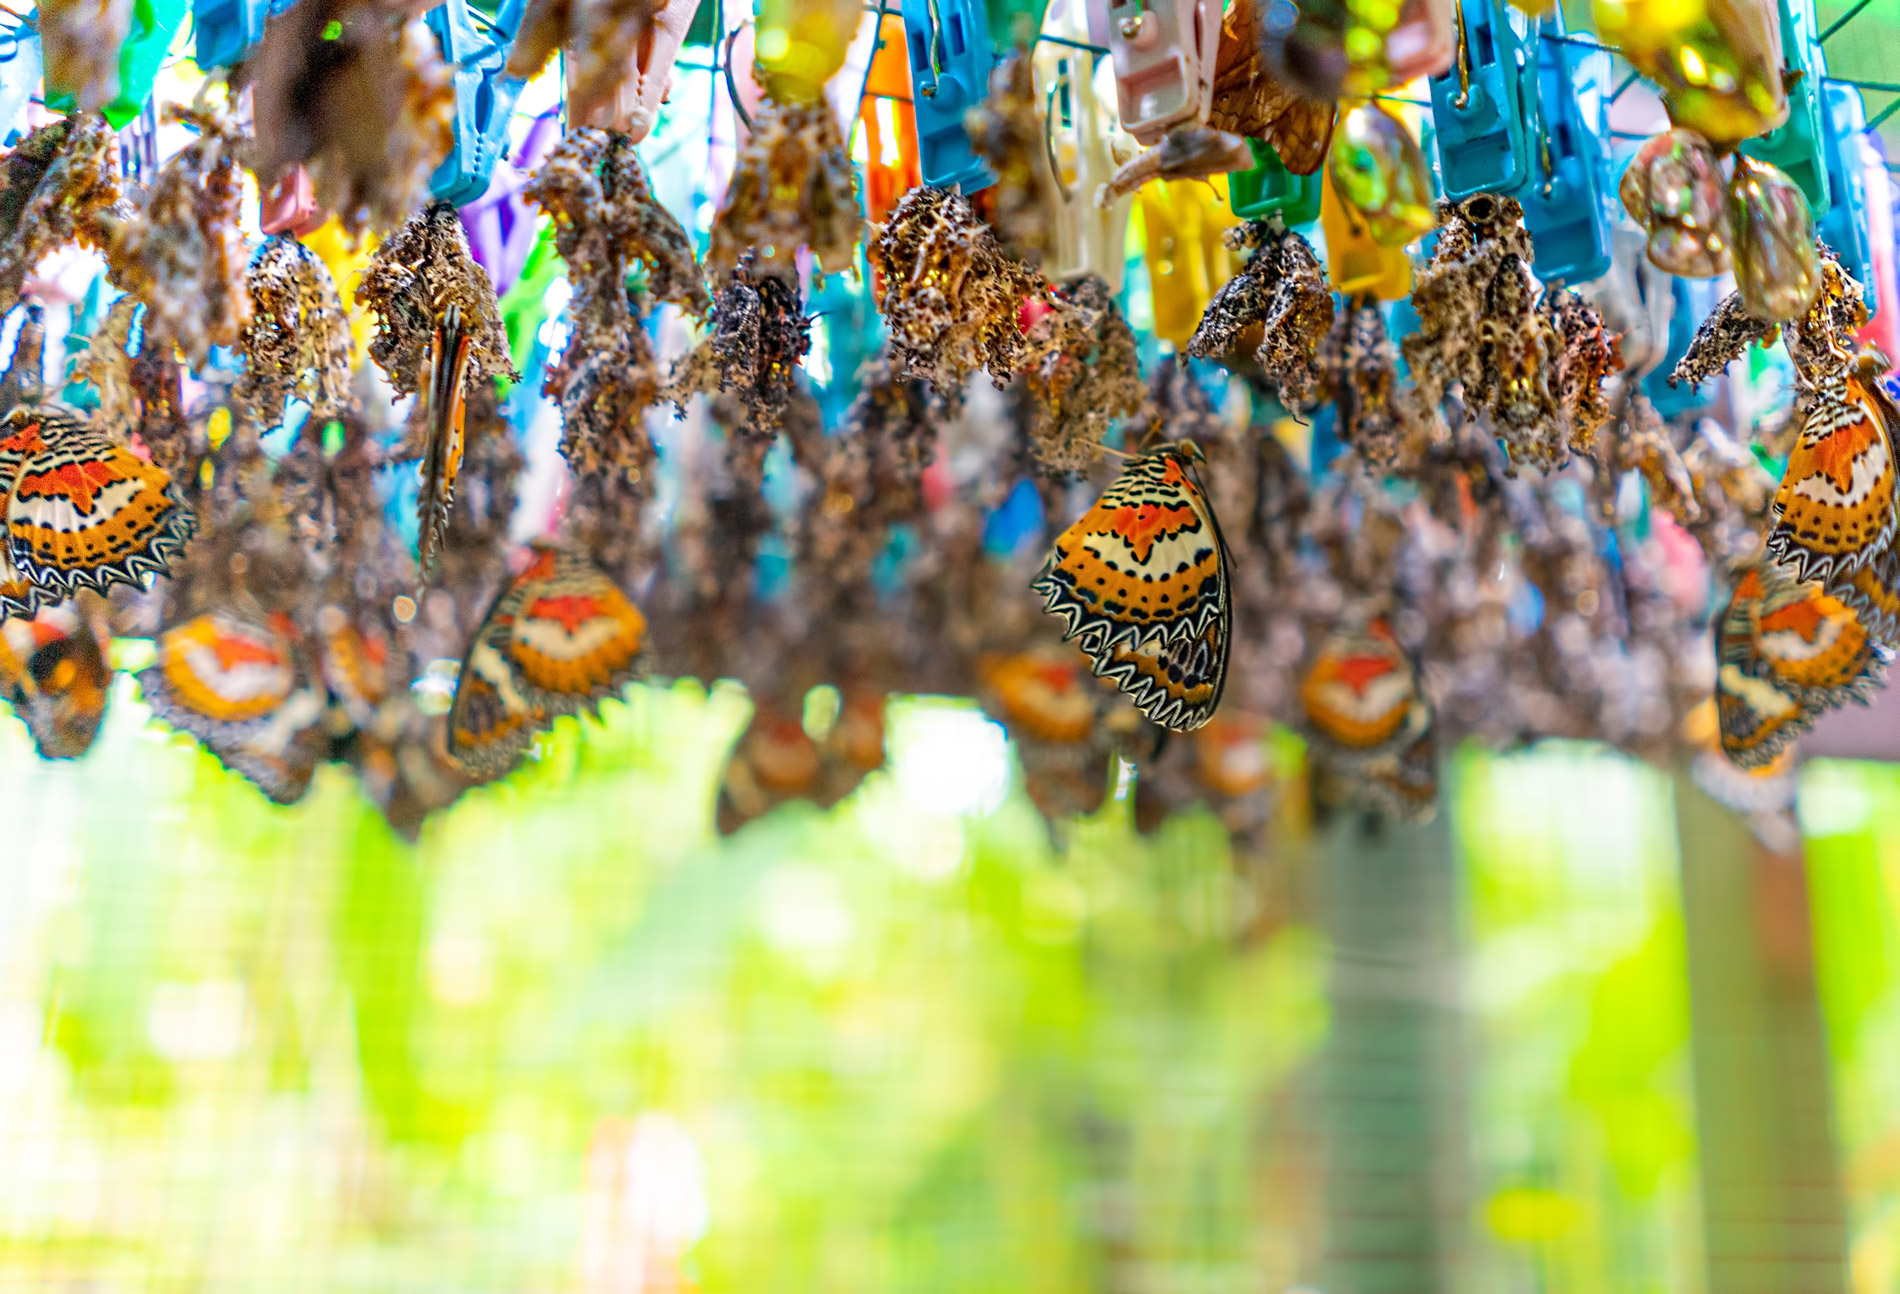 The sustainable evolution of butterfly breeding